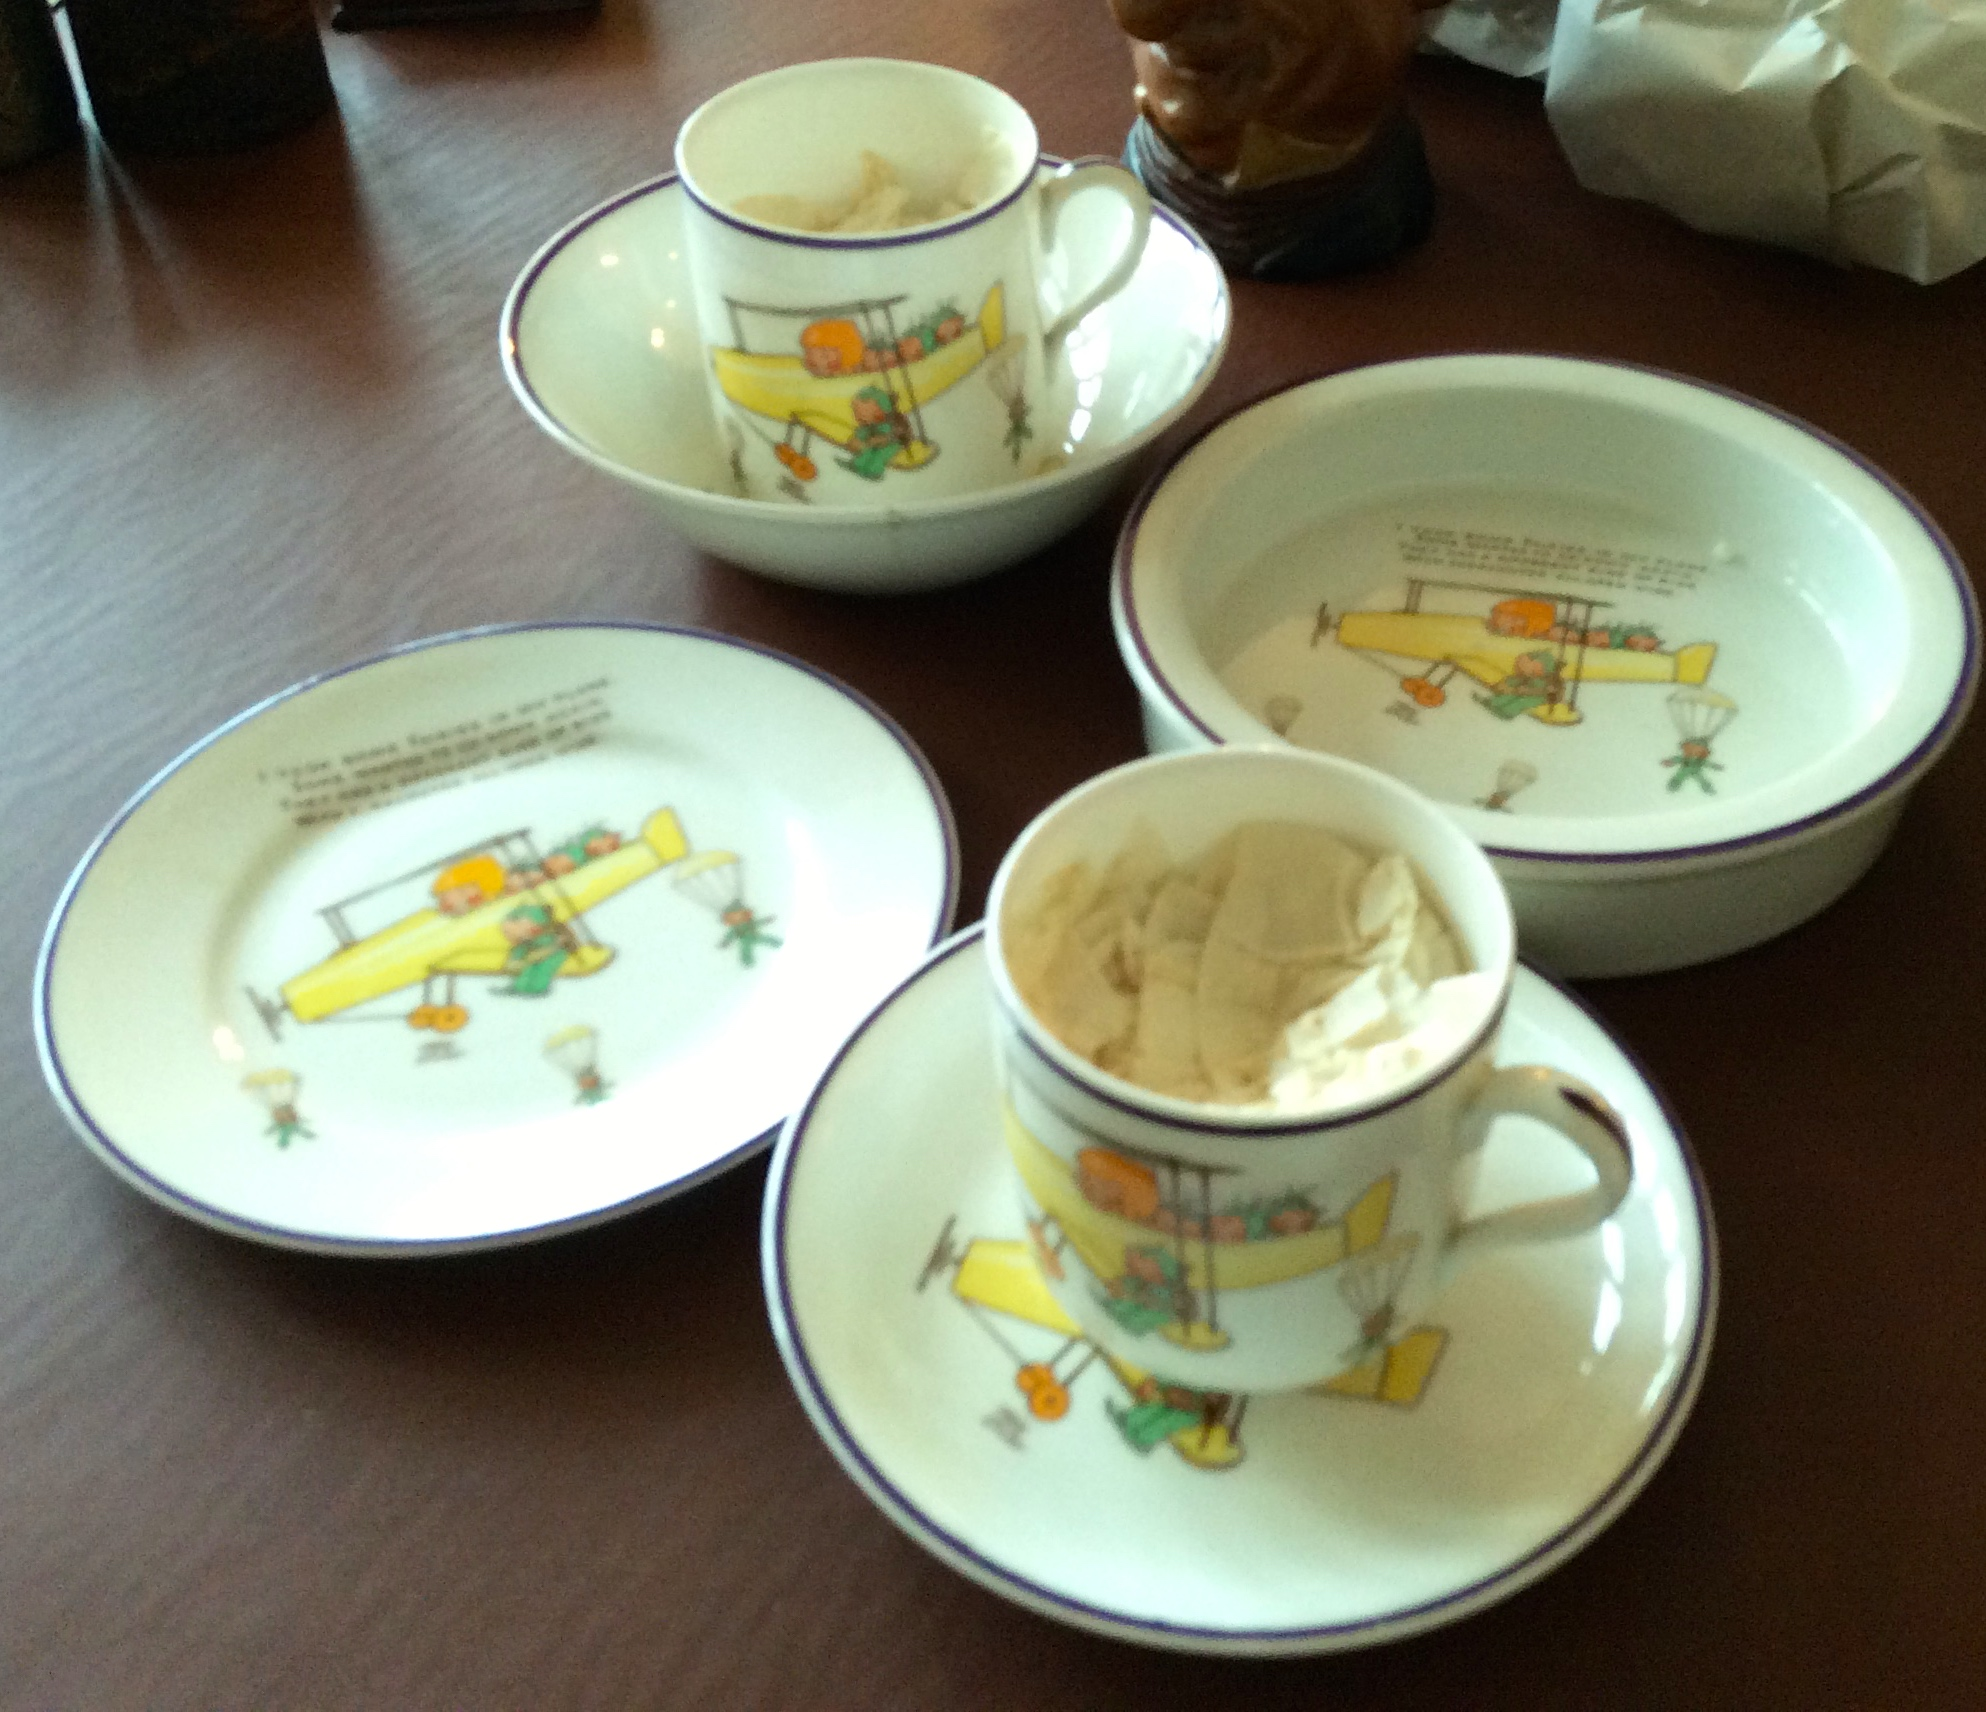 """Lot 25 - Six pcs. Mable Lucy Atwell Shelley childs pottery """"Fairies on a plane"""" 1 a/f"""